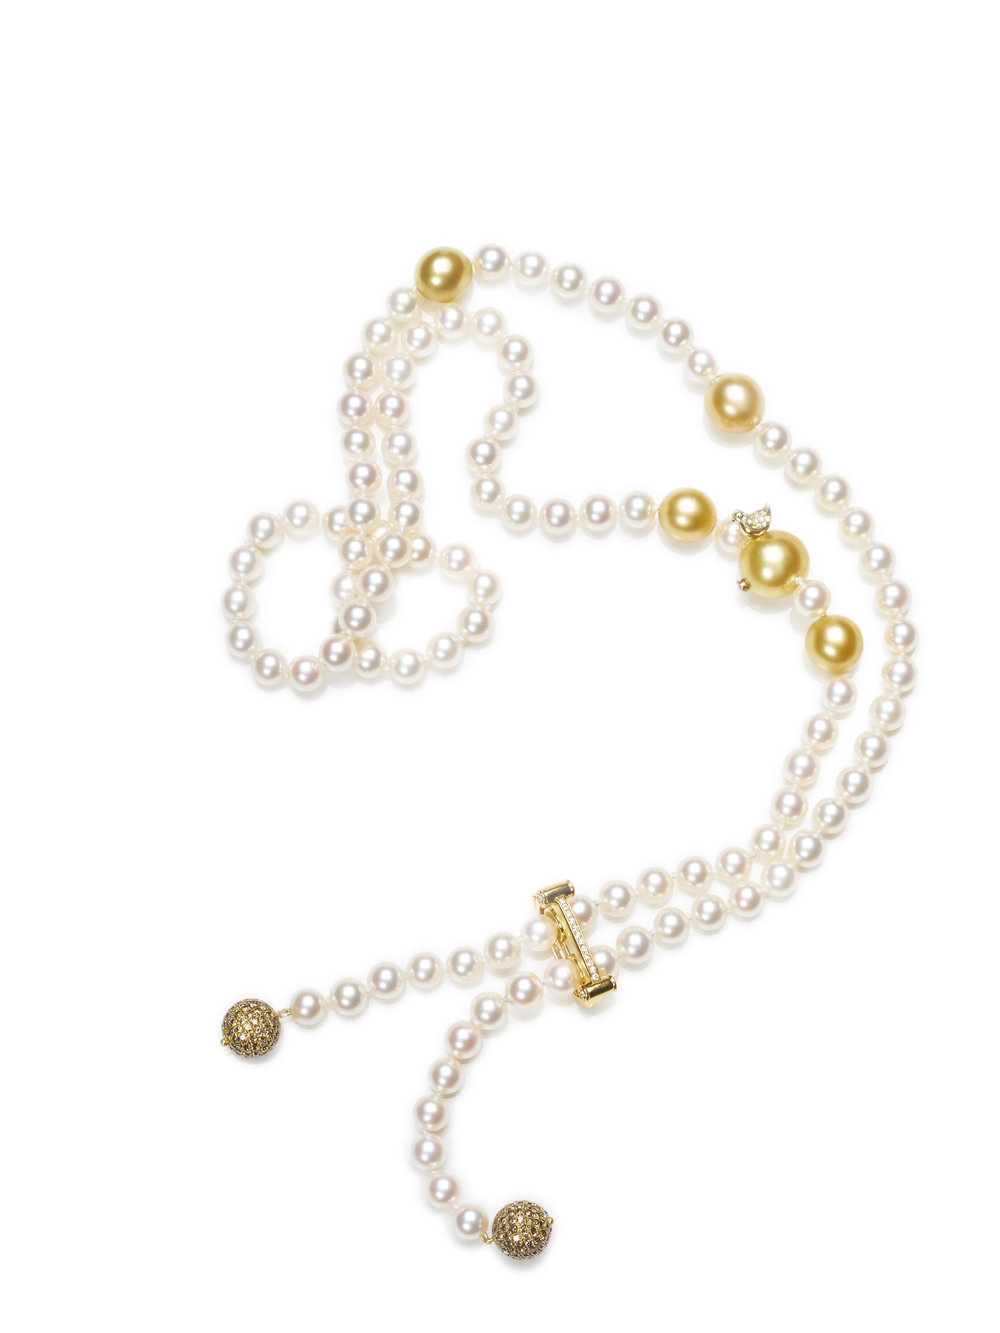 MARILYN NECKLACE   SOUTH SEA PEARLS 4.26 CT OF DIAMONDS      PEARL CLASP    18K GOLD 0.2 CT OF DIAMONDS      Contact for inquiry